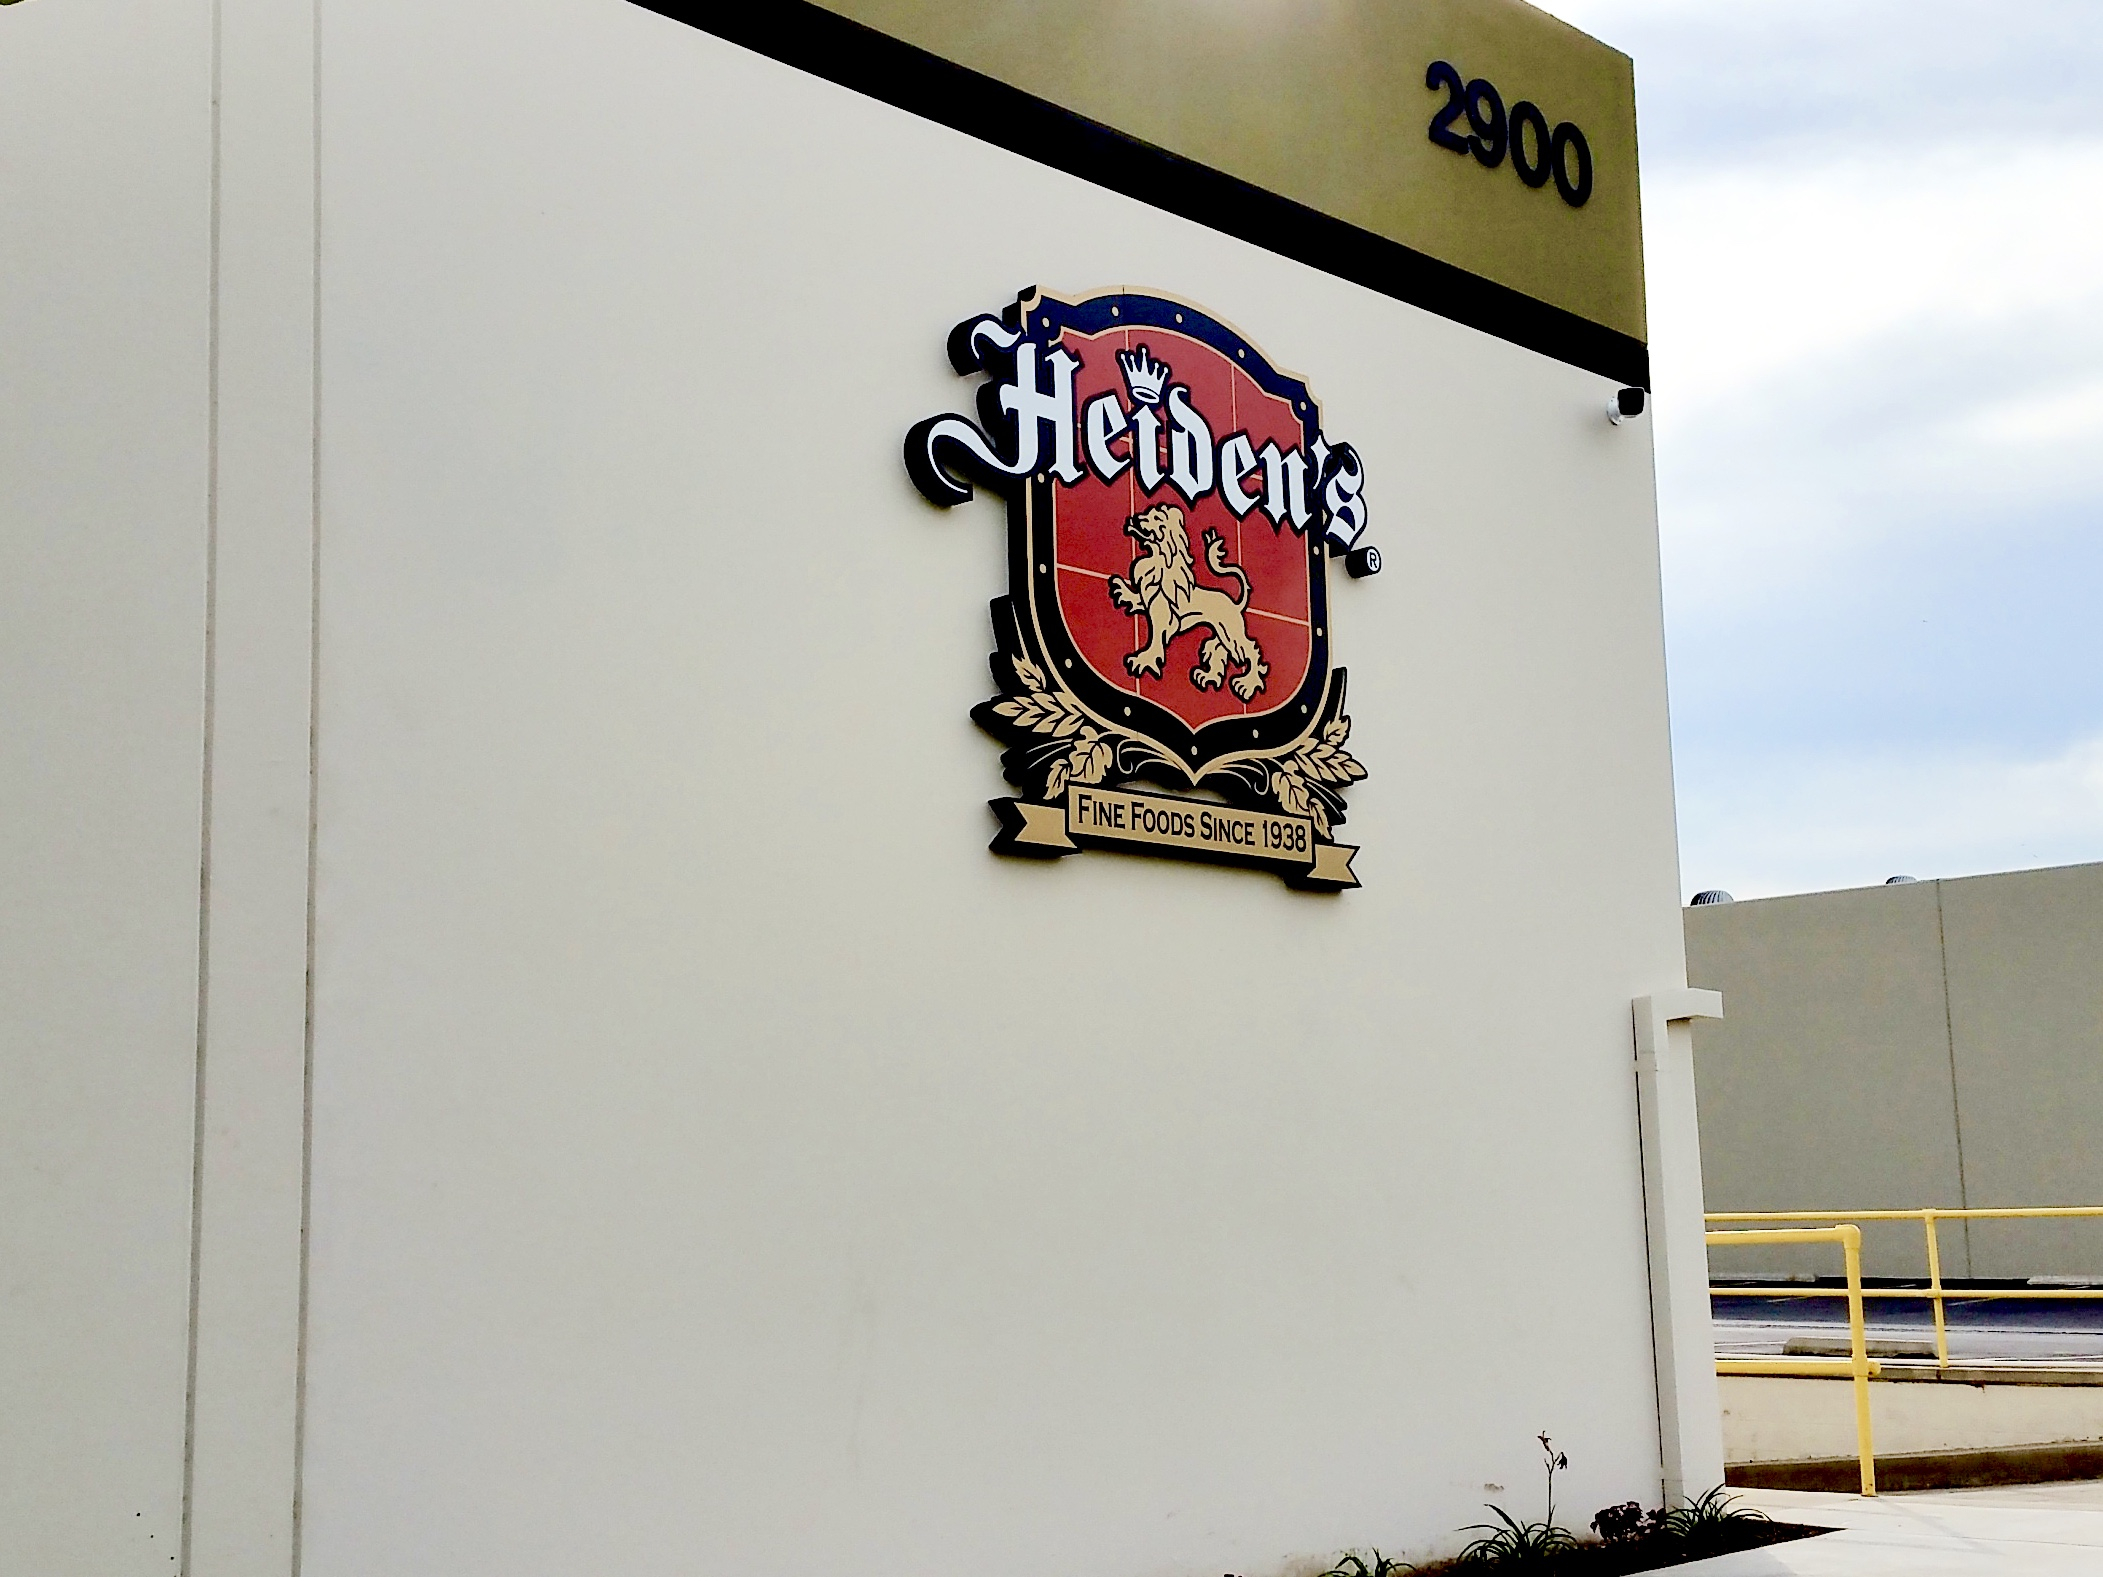 Dimensional exterior logo and letters